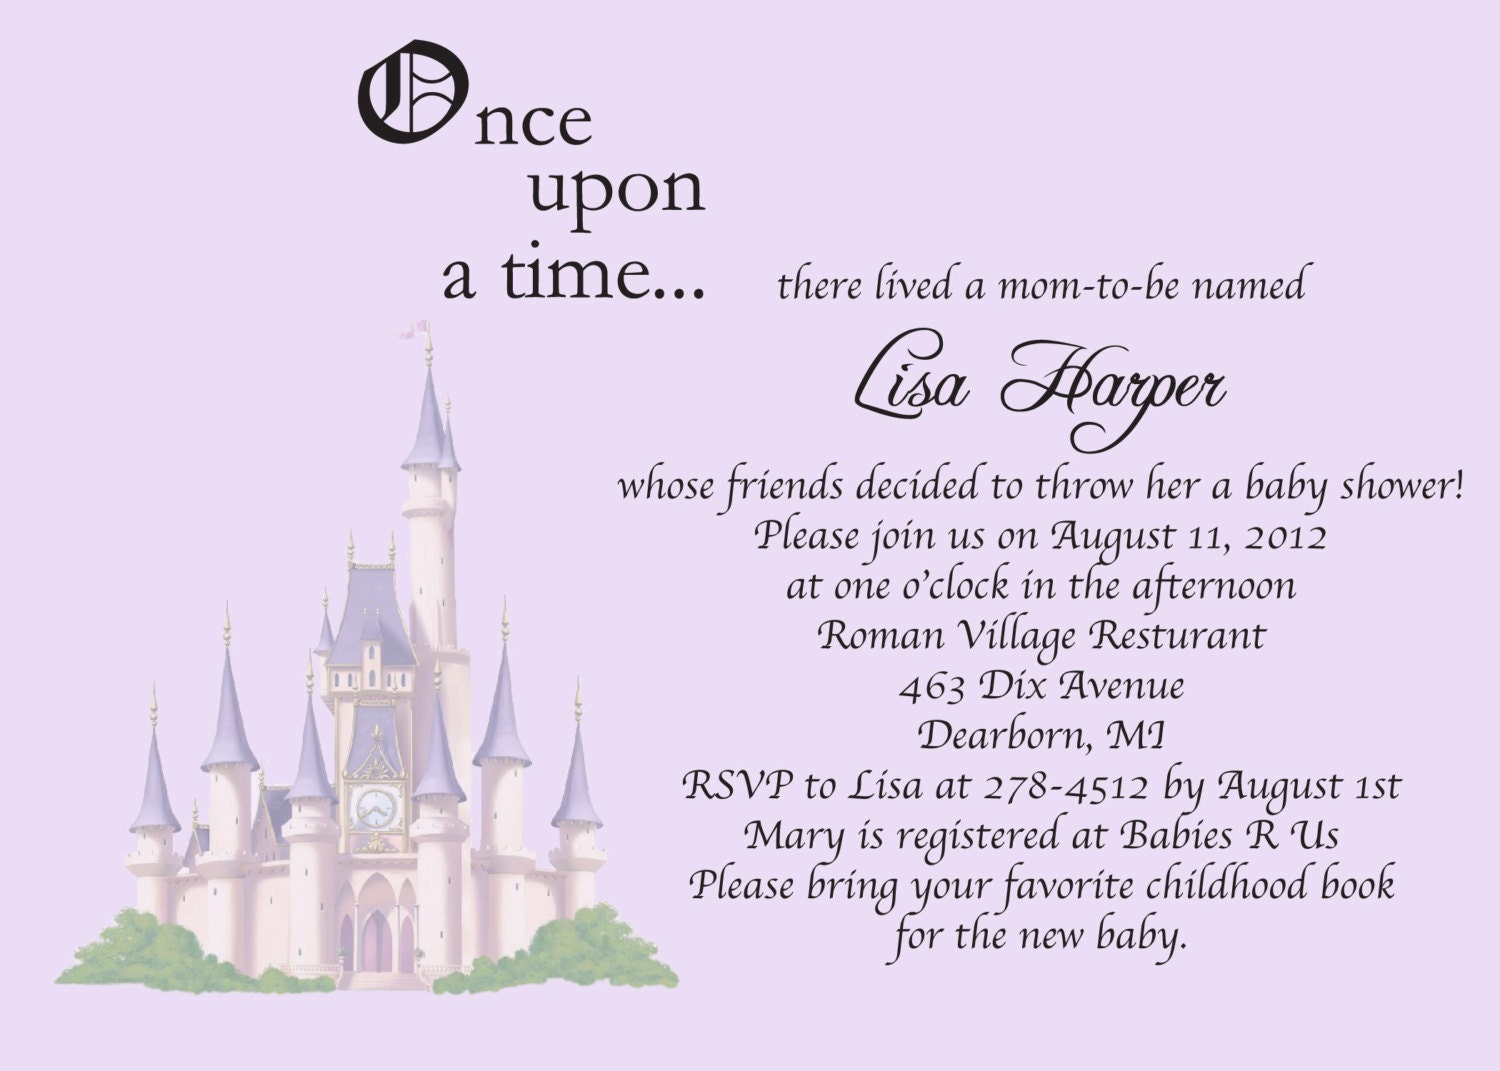 Storybook Invitations Baby Shower with amazing invitations design